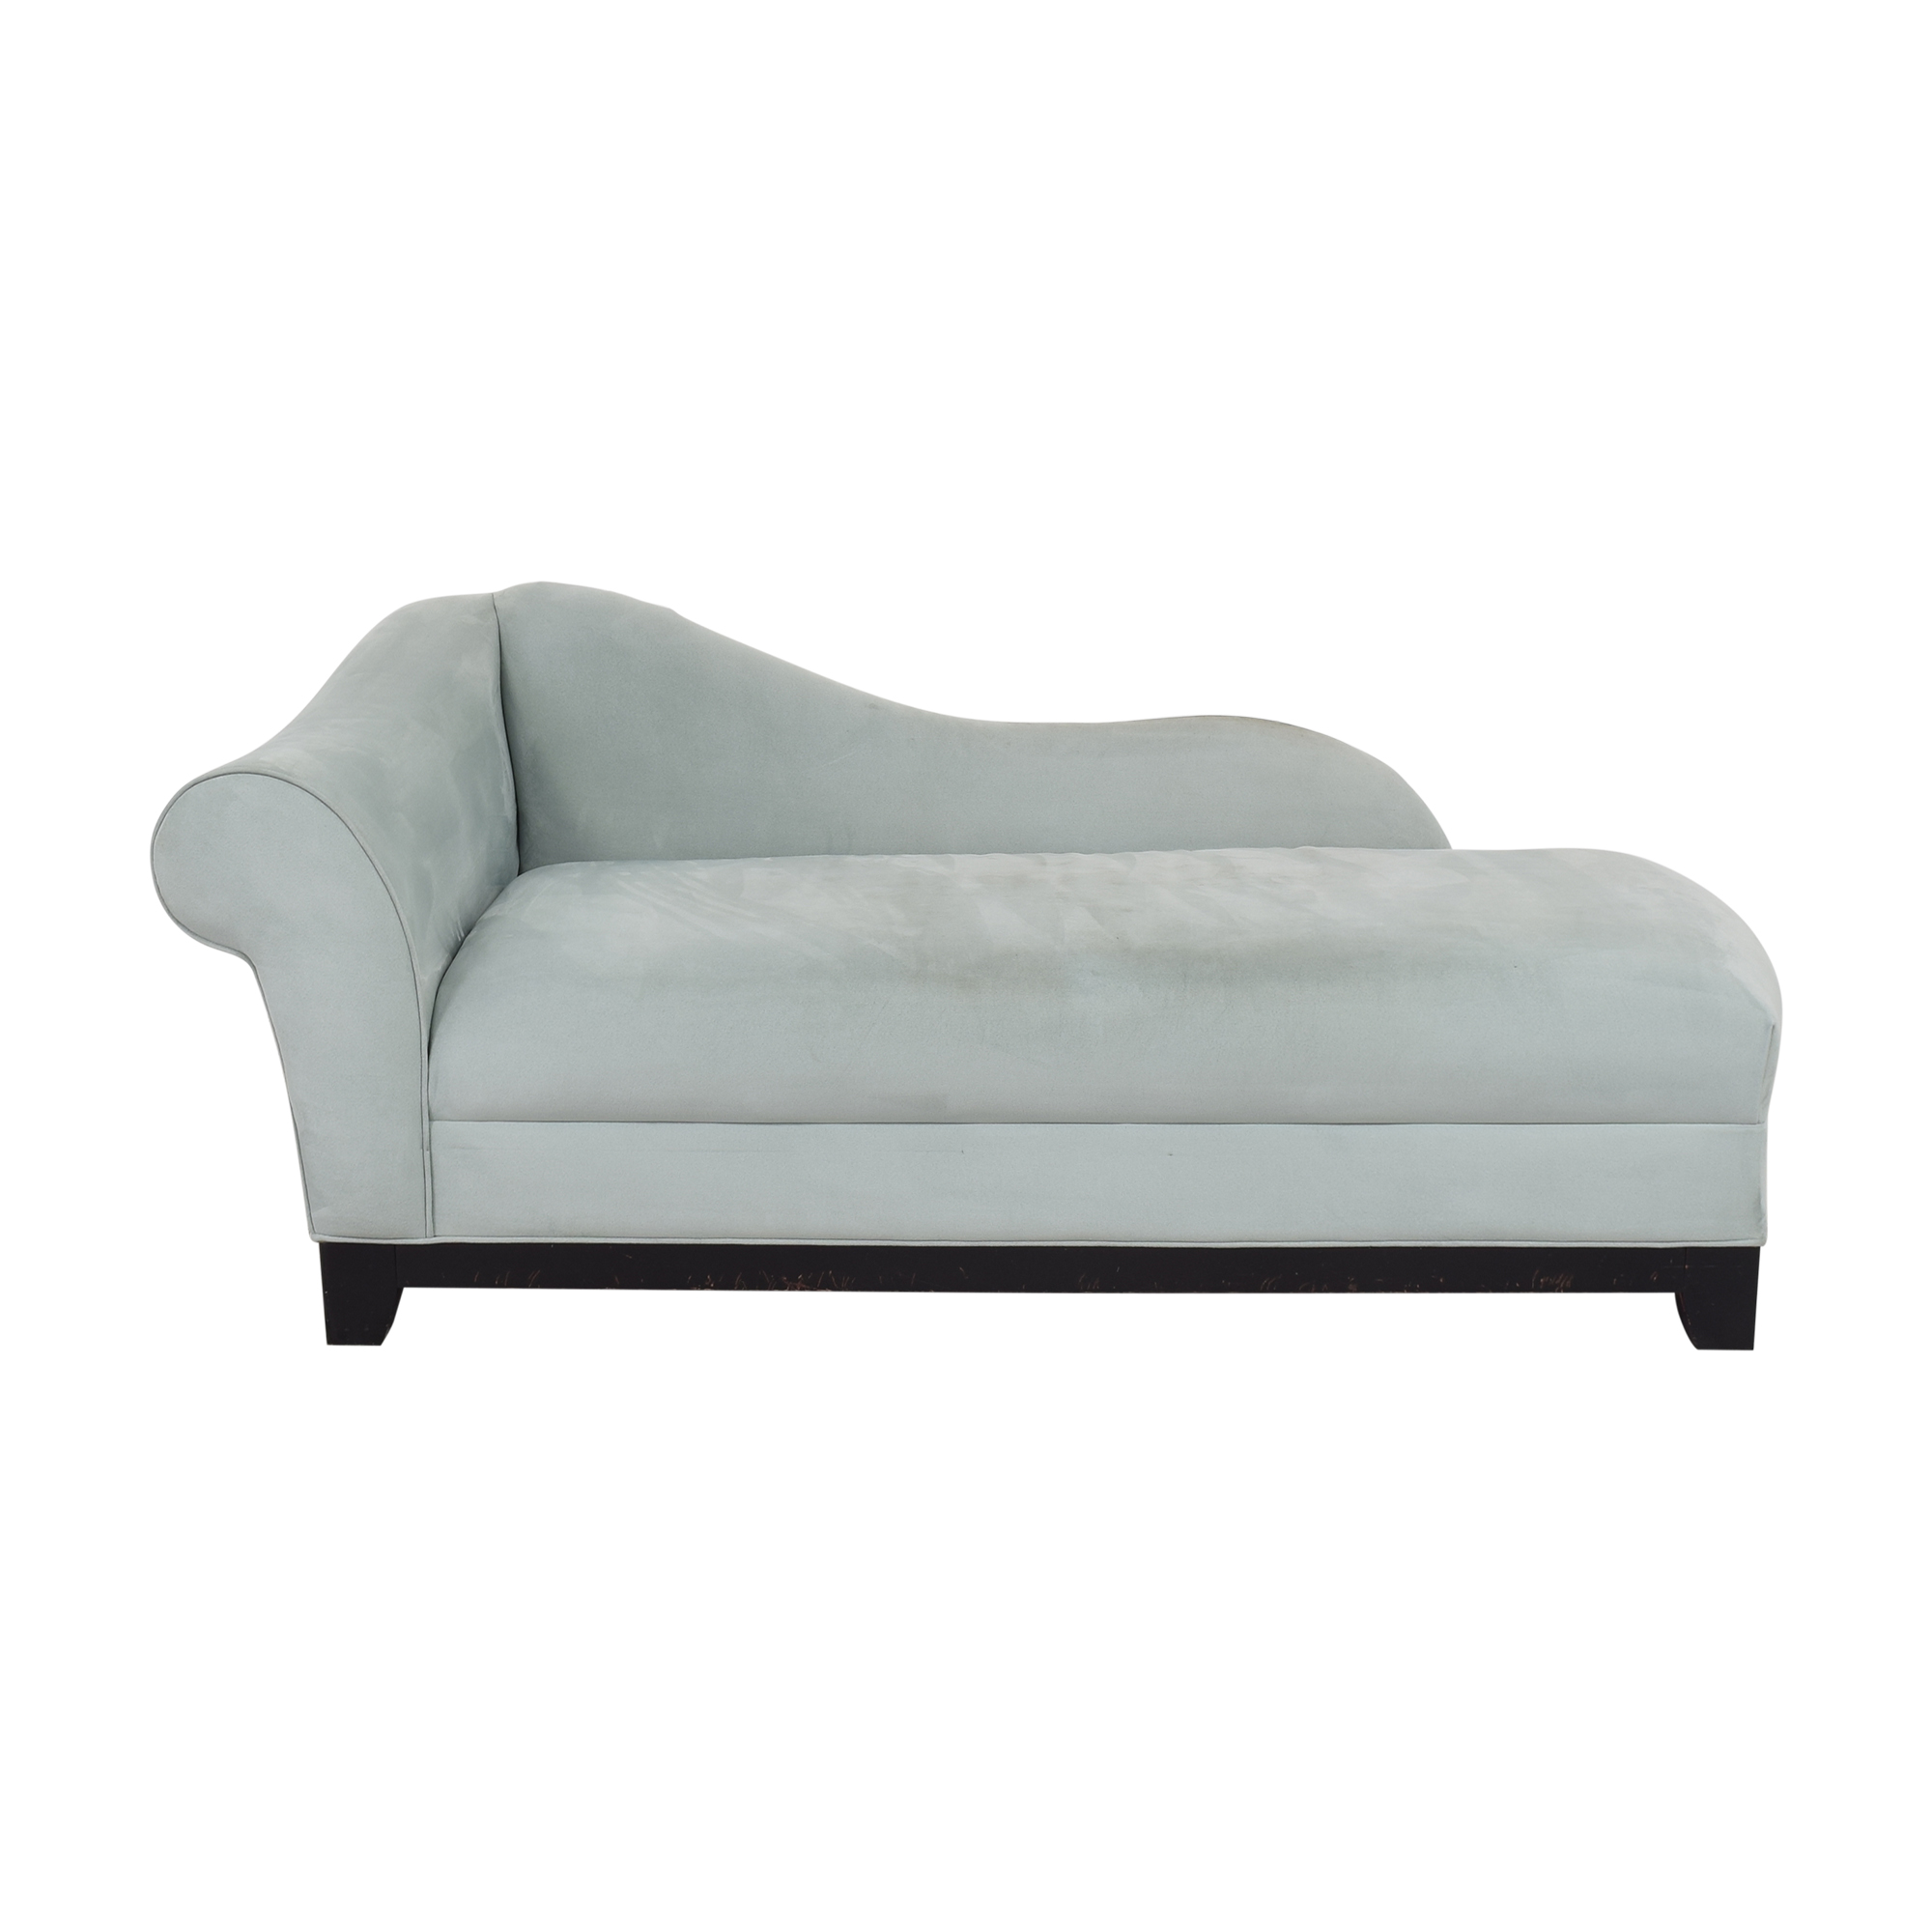 Raymour & Flanigan Raymour & Flanigan Chaise Lounge price